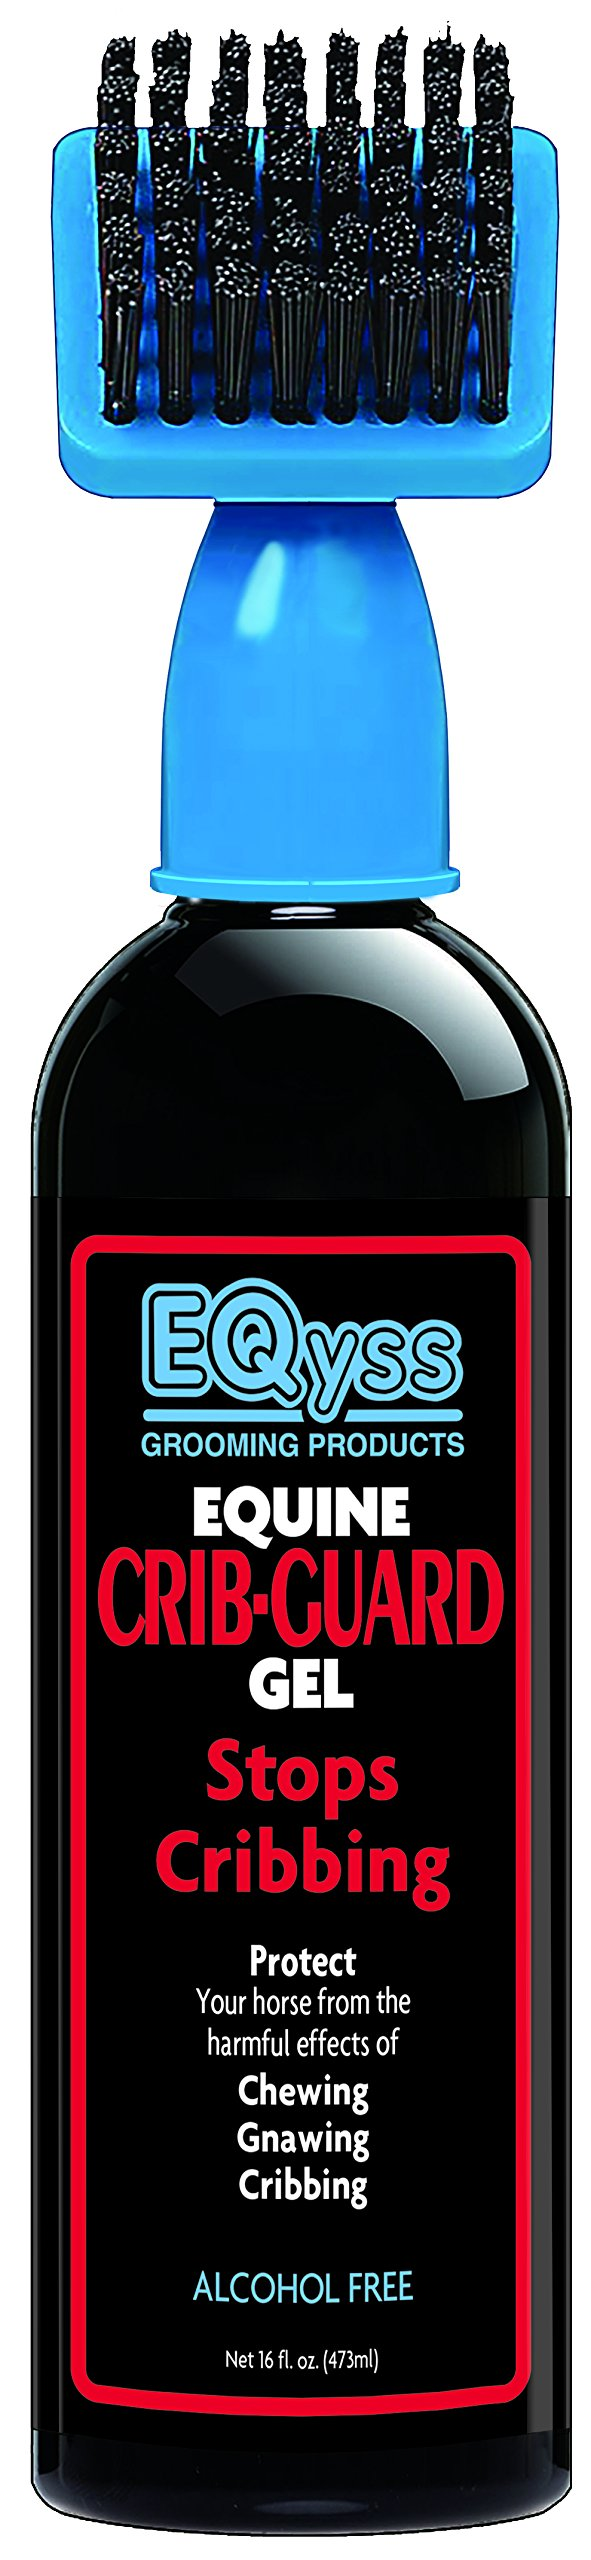 Eqyss Crib Guard Equine Gel 16oz - Guaranteed to Stop Your Horse from Chewing and Cribbing by Eqyss